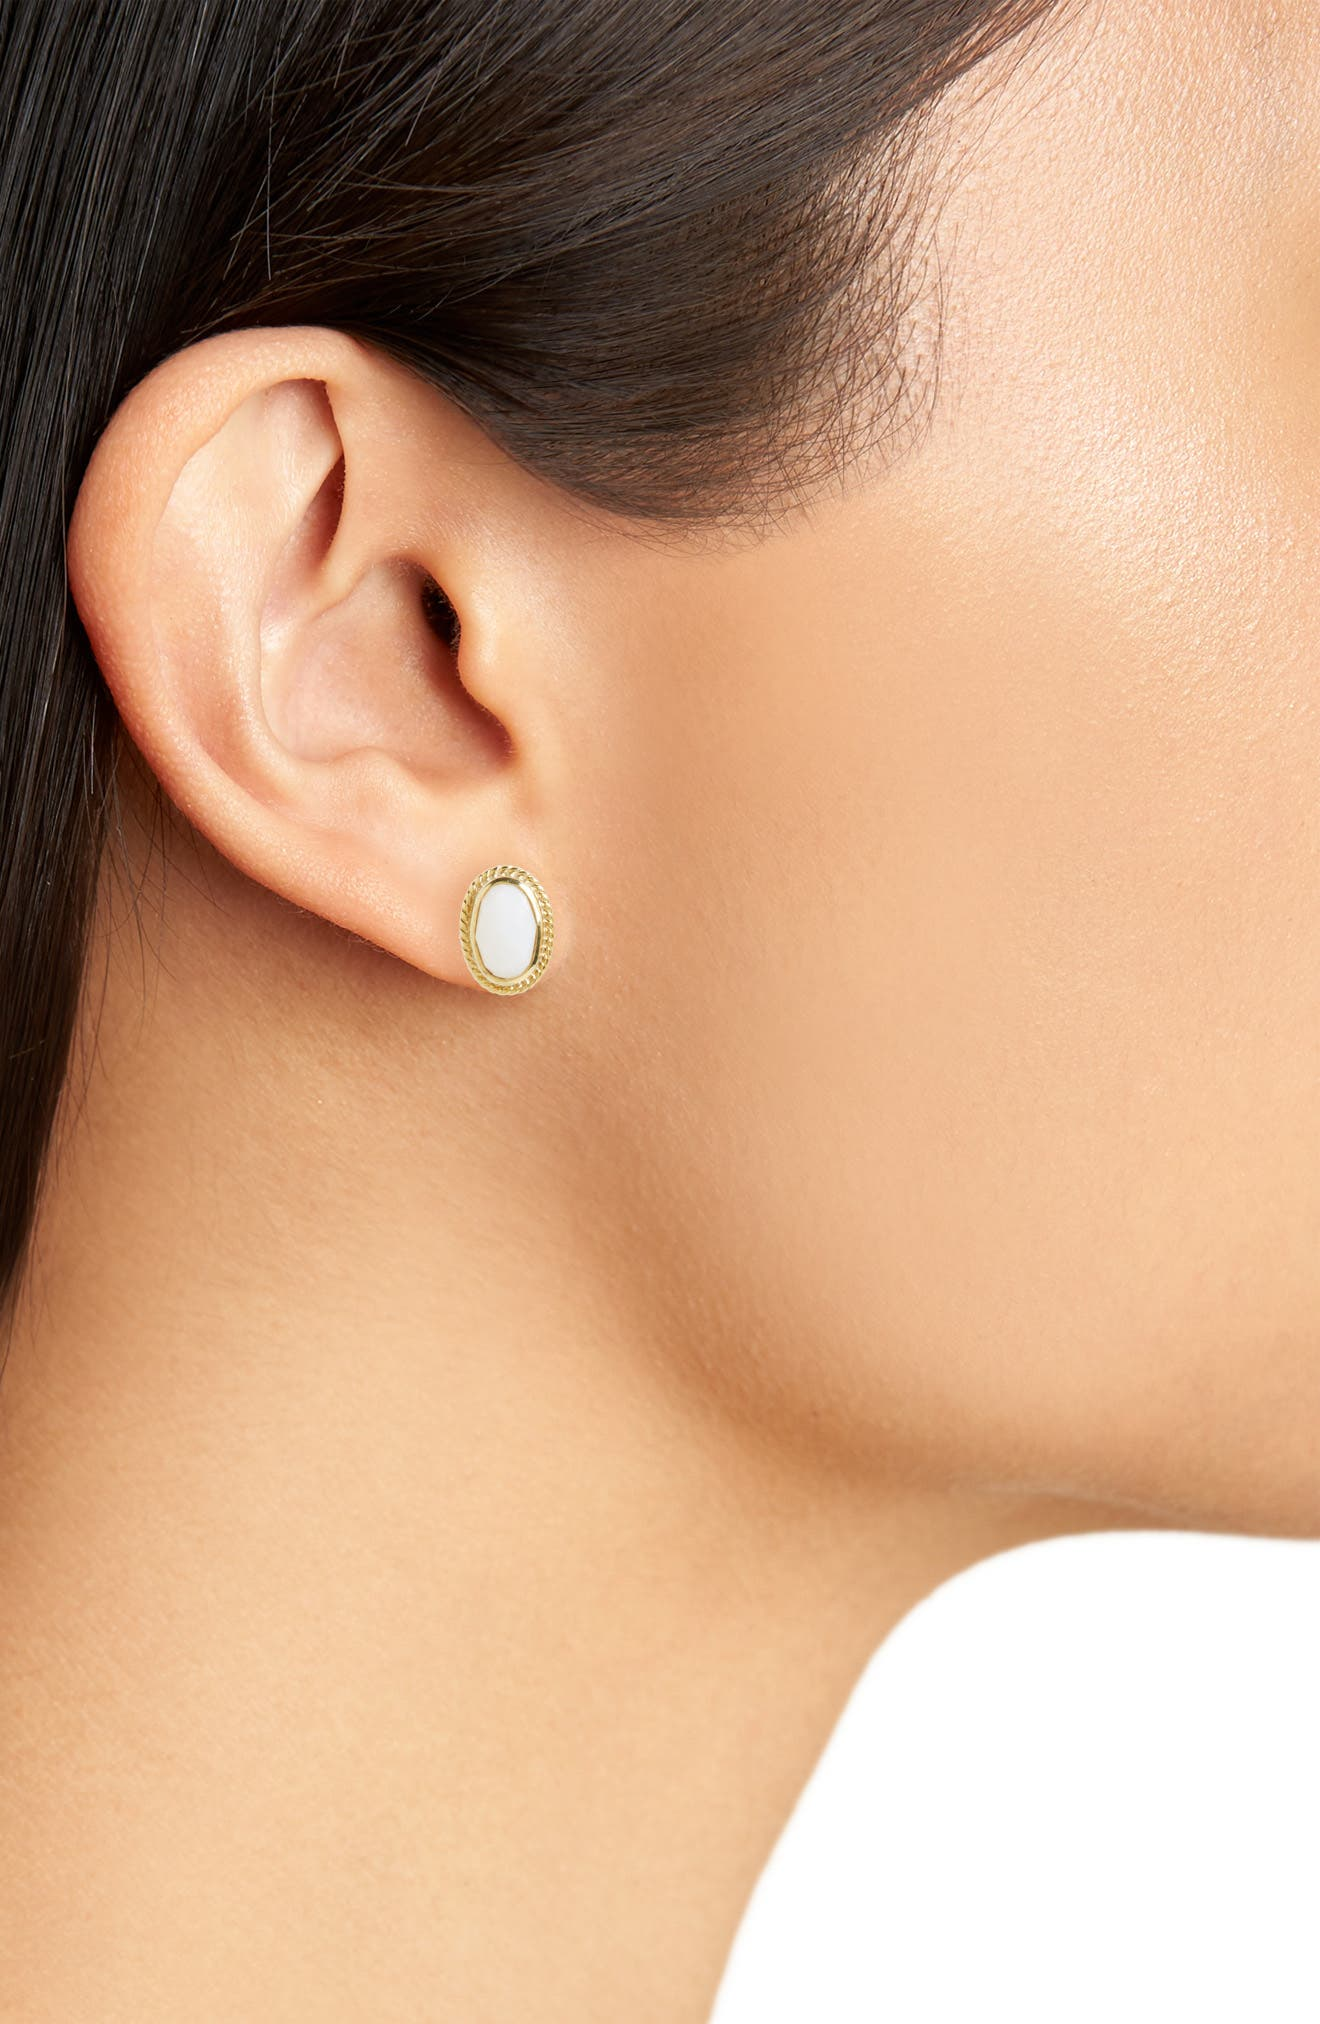 White Opal Stud Earrings,                             Alternate thumbnail 2, color,                             Gold/ Silver